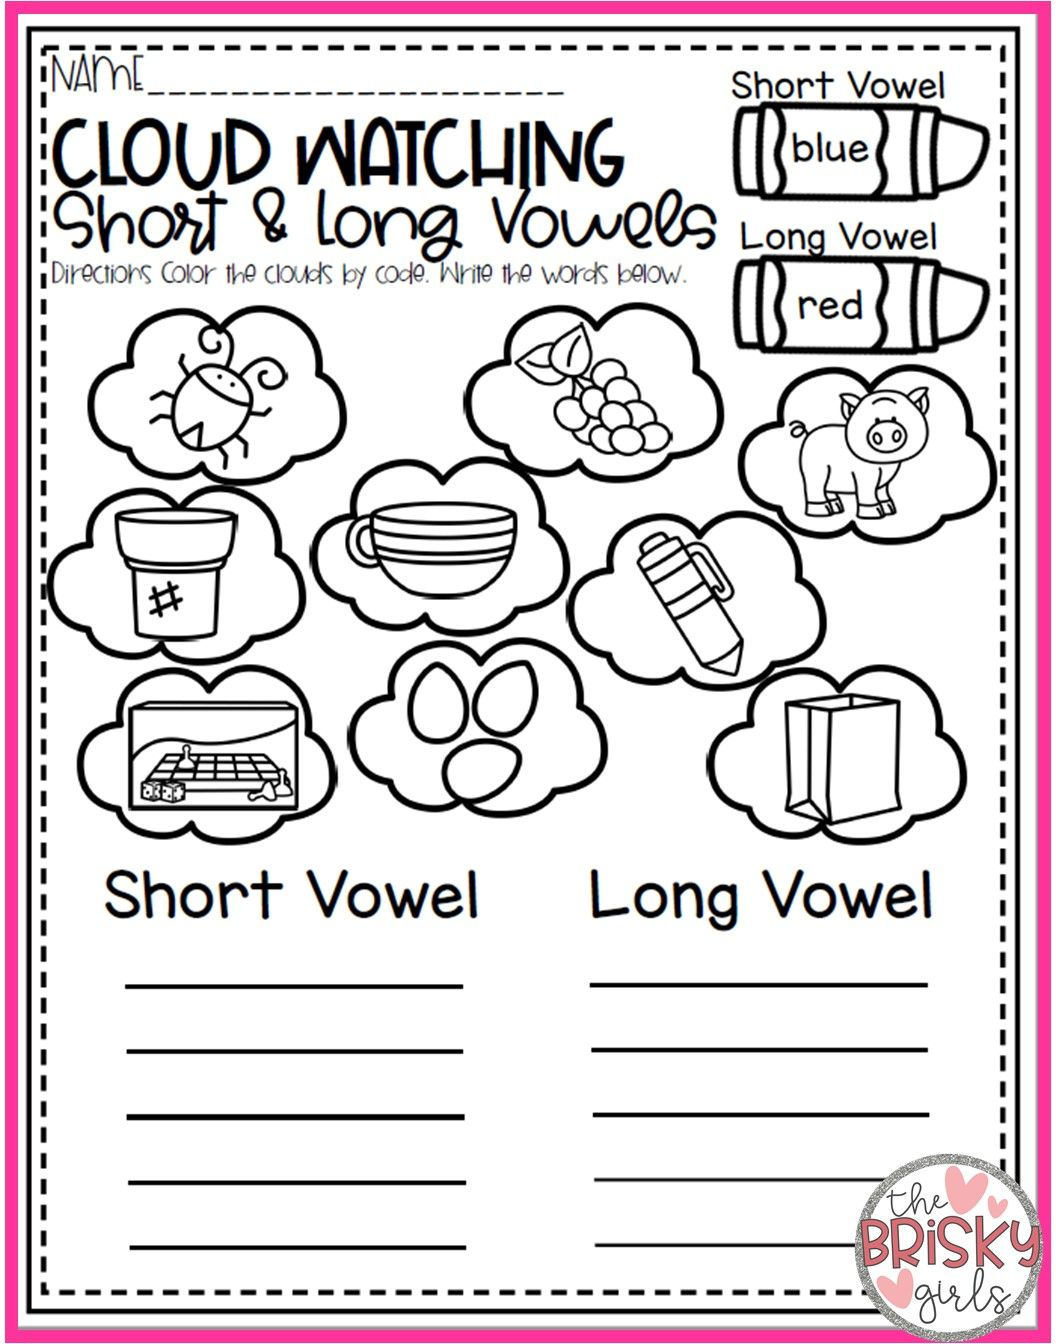 Spring Kindergarten Activity Pack | The Brisky Girls Products